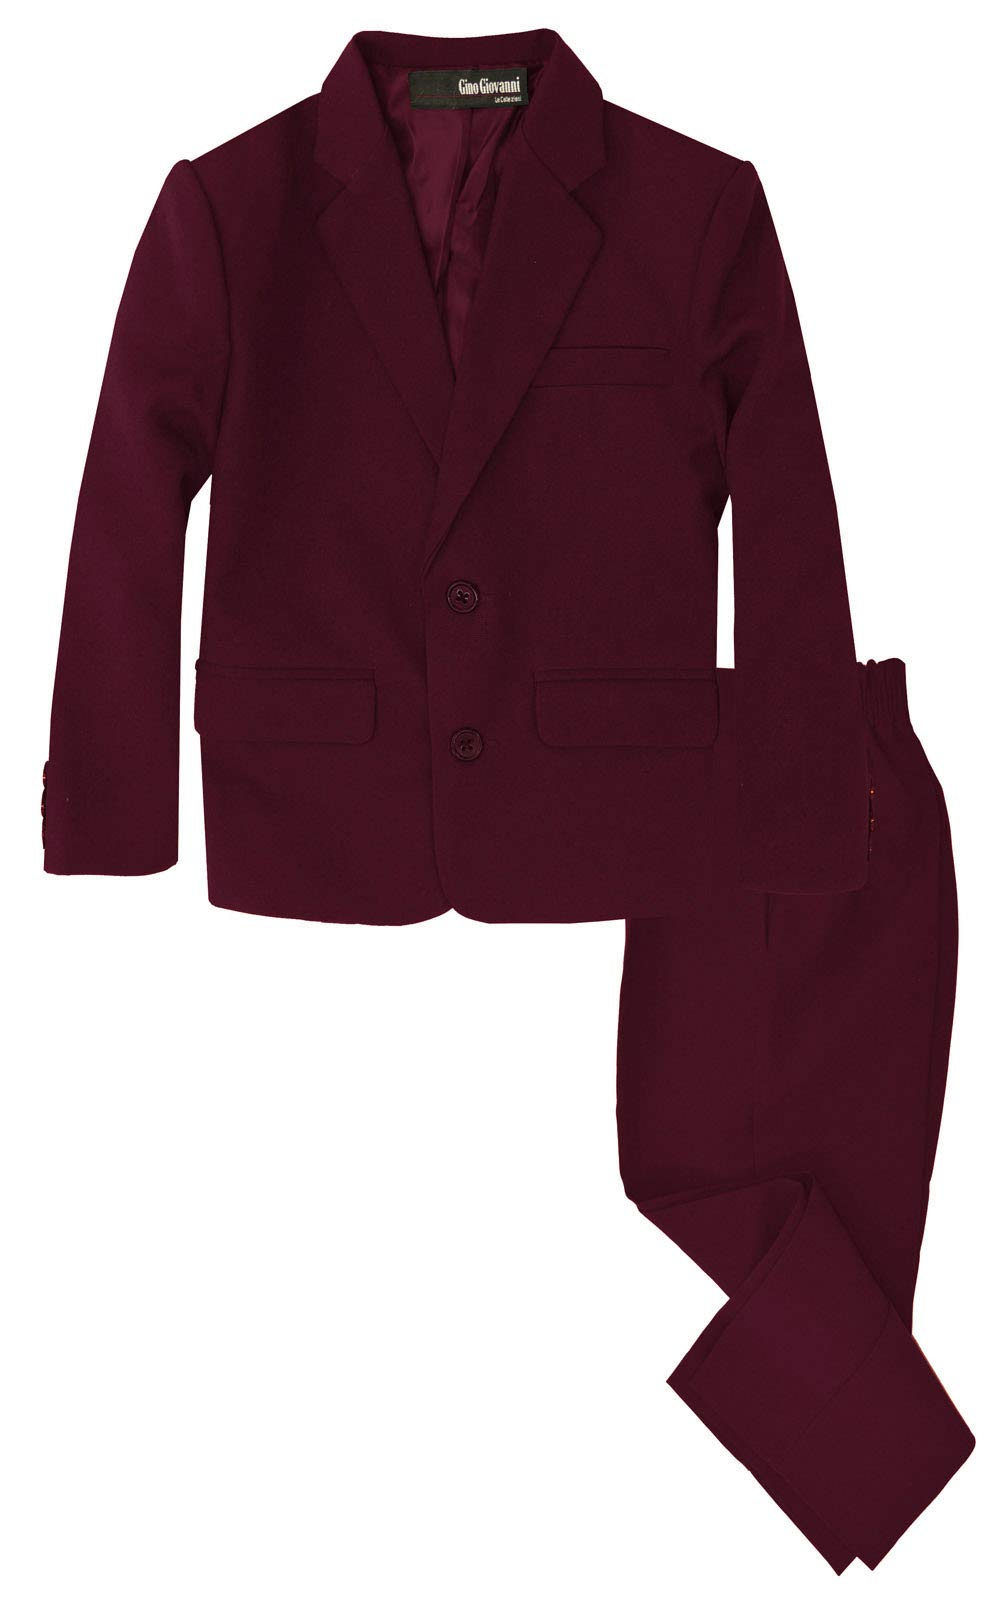 G218 Boys 2 Piece Suit Set Toddler to Teen (Burgundy, 4T)